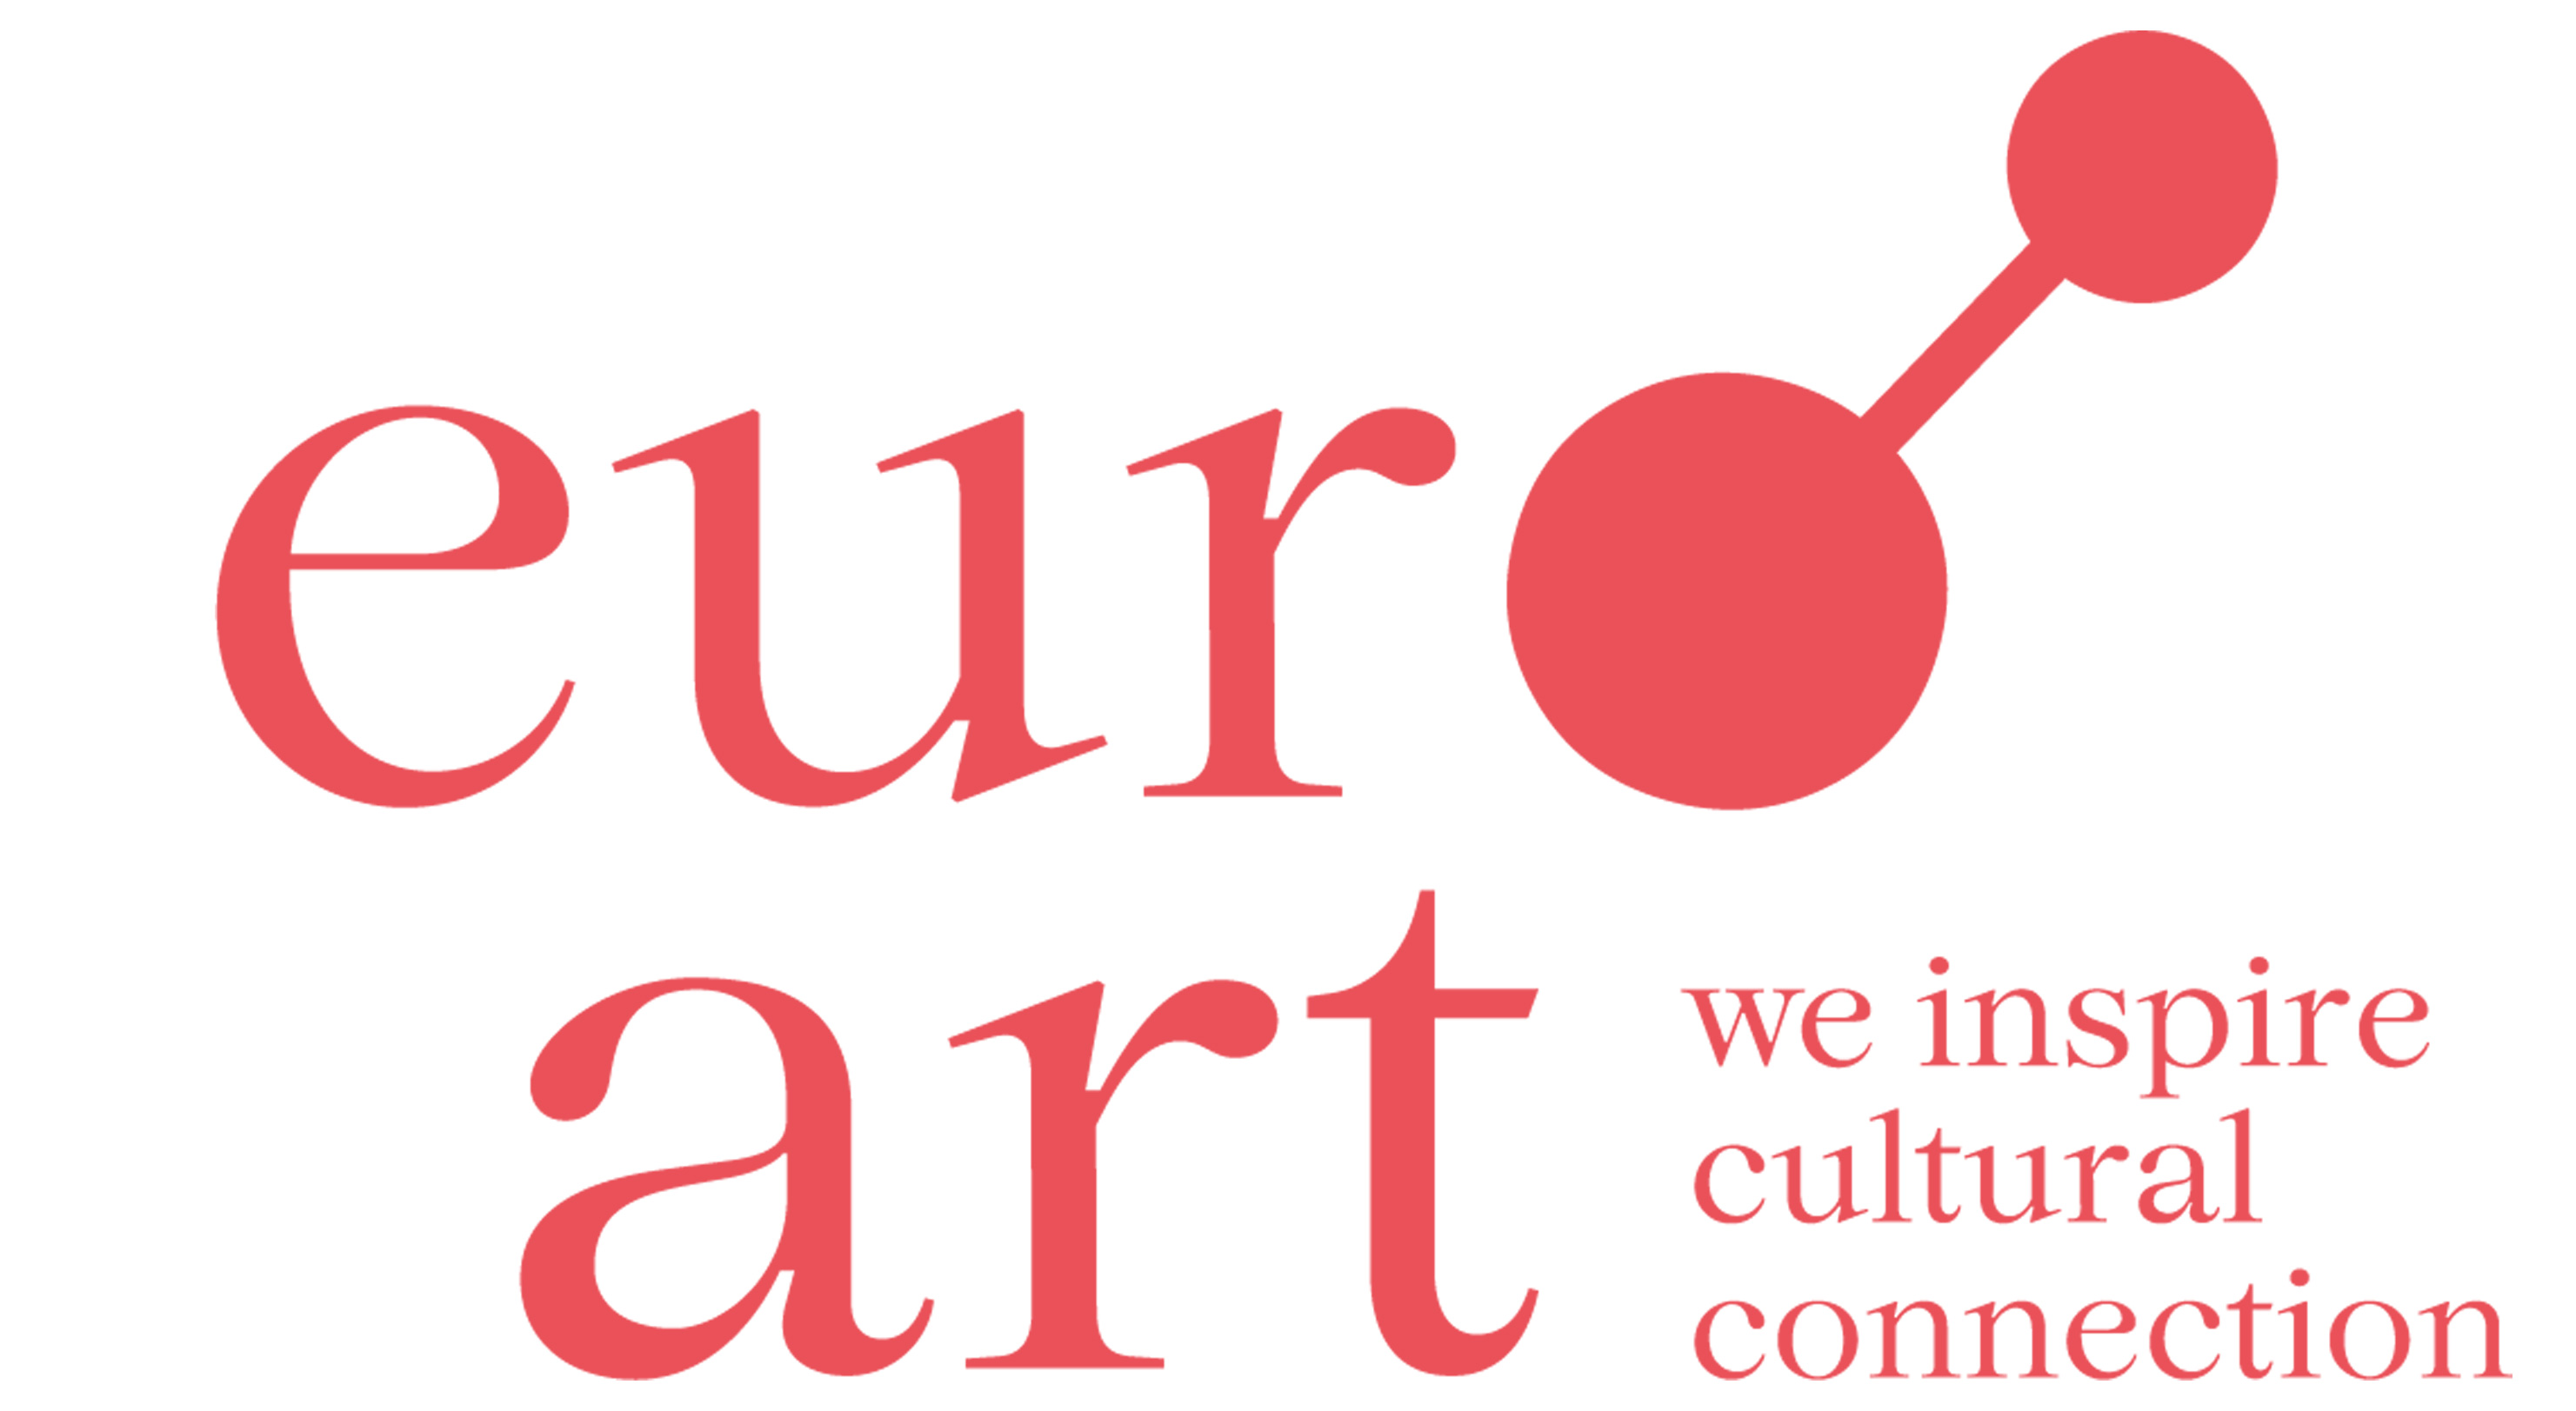 euroArt - the European Federation of Artists' Colonies